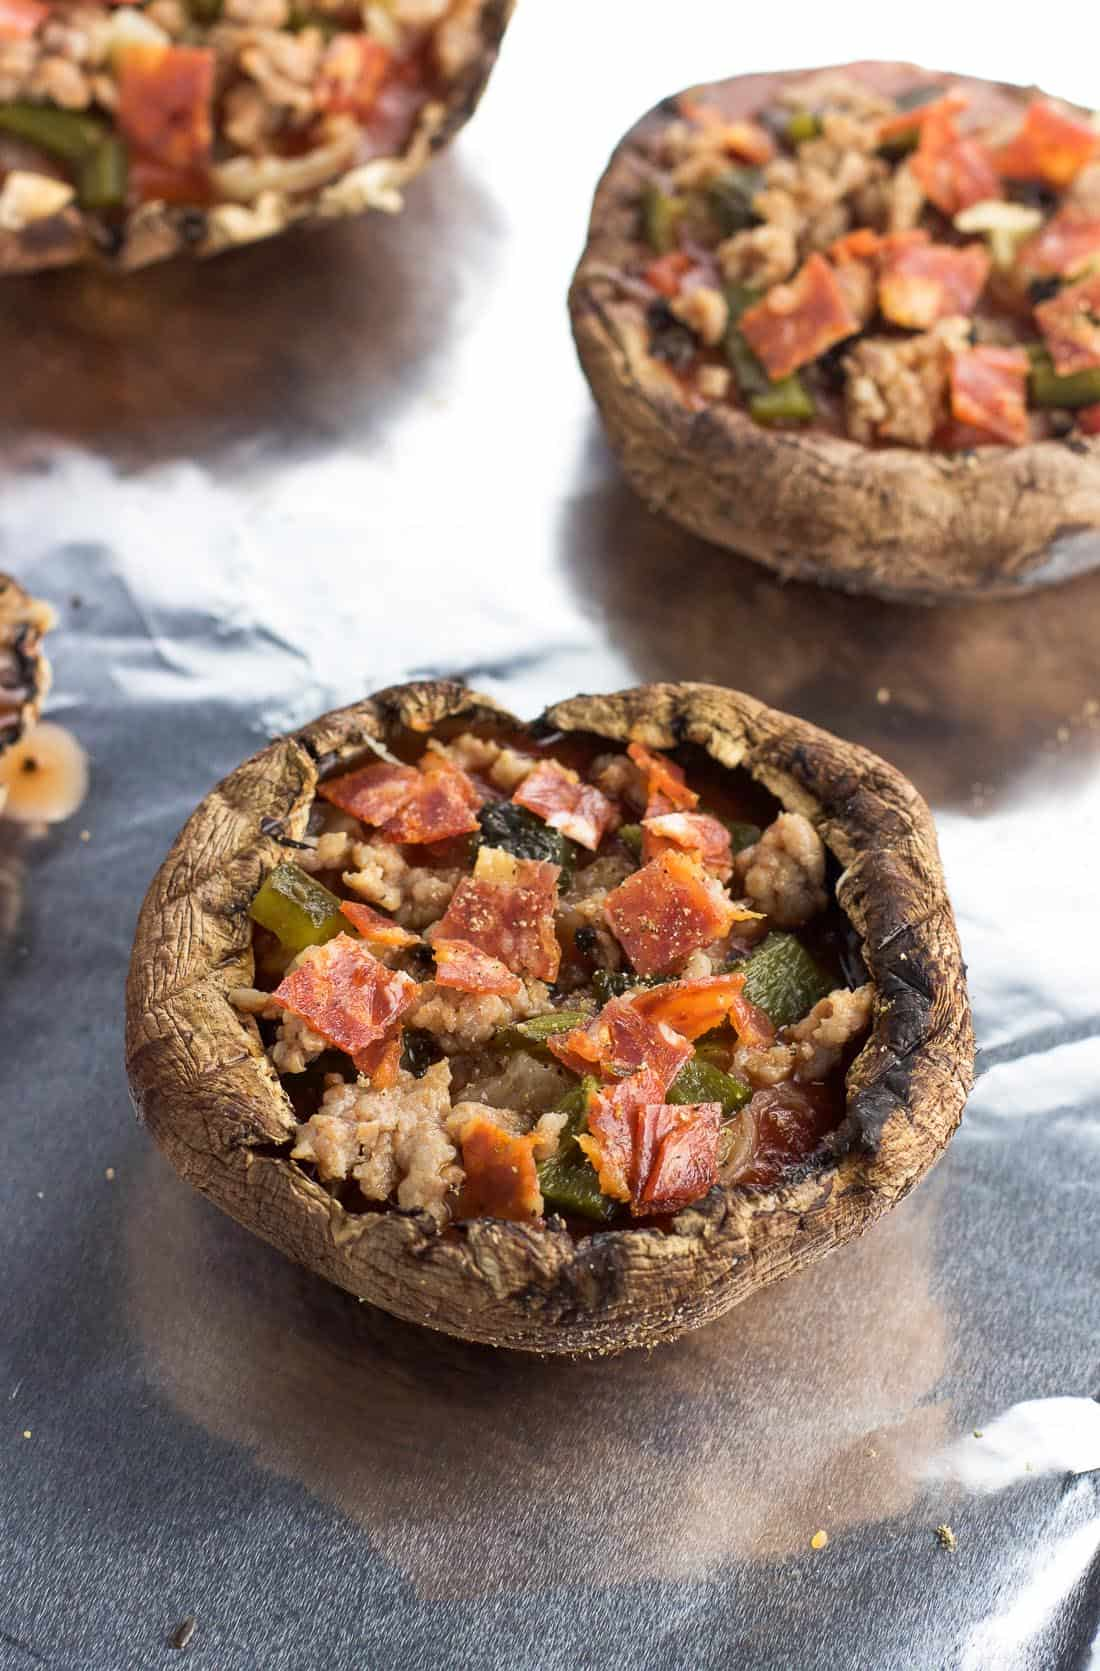 Supreme stuffed portobello mushroom pizzas are a delicious way to enjoy all the flavors of a supreme pizza in a healthier way. A mixture of pizza sauce, Italian sausage, pepperoni, peppers, olives, and more are covered in fresh mozzarella in these easy stuffed portobello mushrooms.